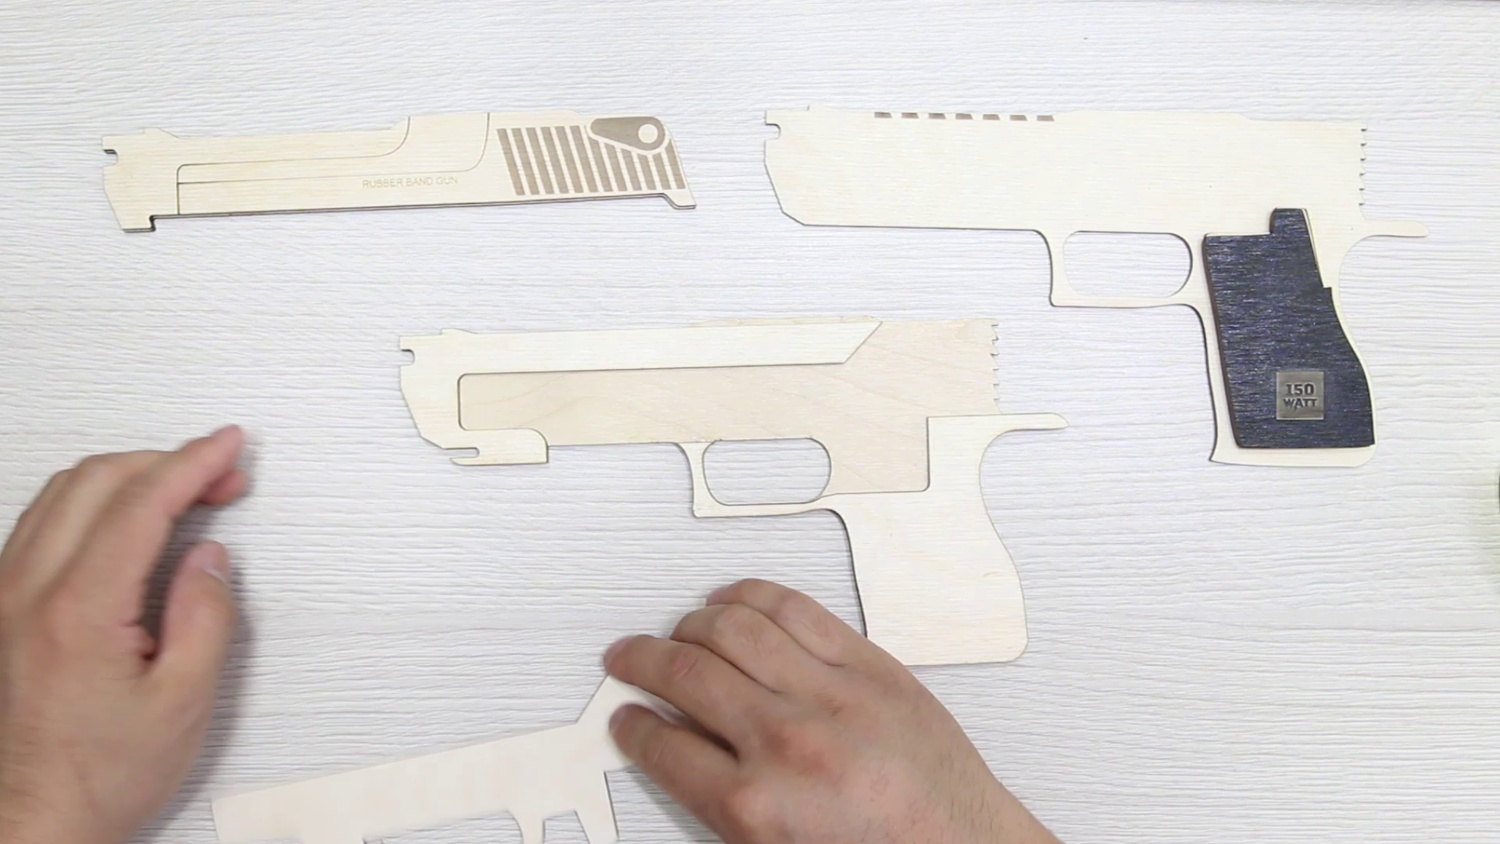 Rubber Band Gun 3mm Plywood Design Laser Cut DXF File